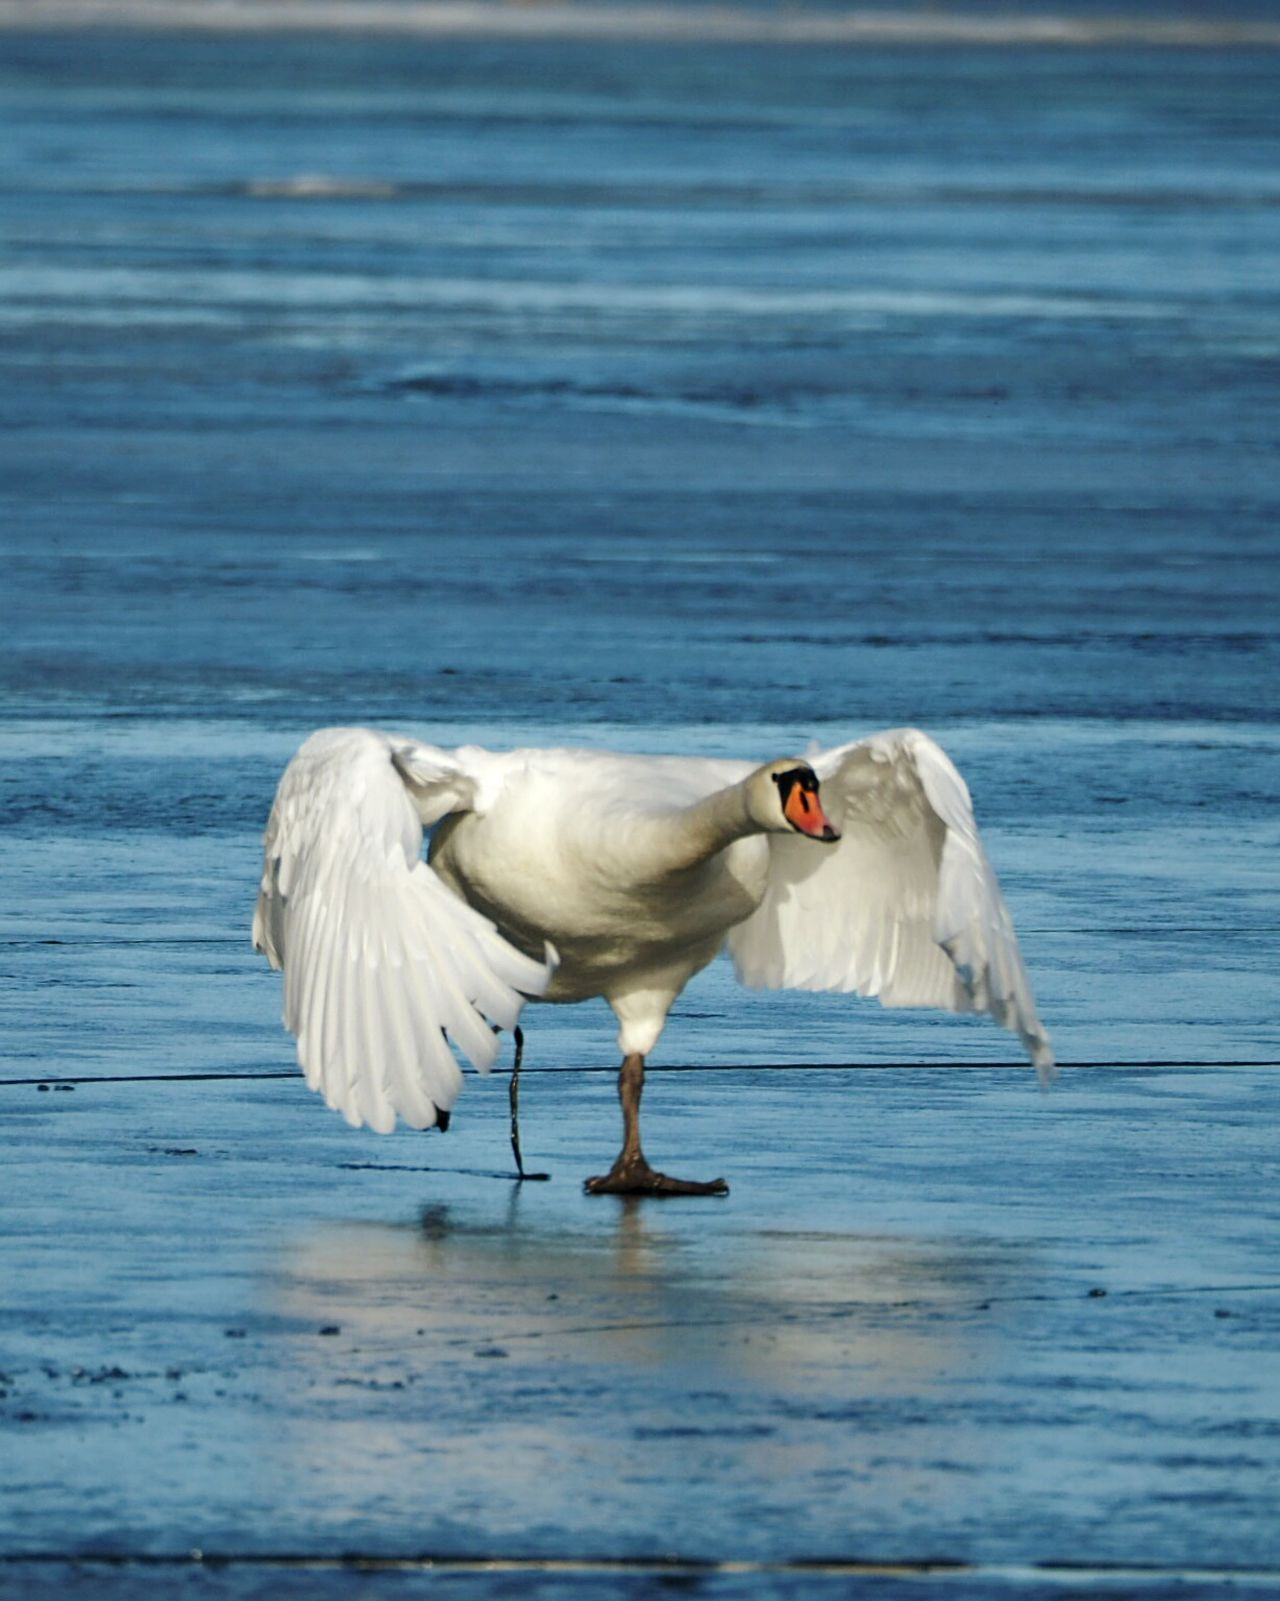 Bird Water One Animal Animals In The Wild Animal Themes No People Animal Wildlife Sea Bird Frozen Sea Spreading Wings Winter Nature Outside Swan Motion Sunny Winter Day Nature Animals In The Wild Spread Wings Animal Beautiful Nature Beauty In Nature Winter Ice Outdoors